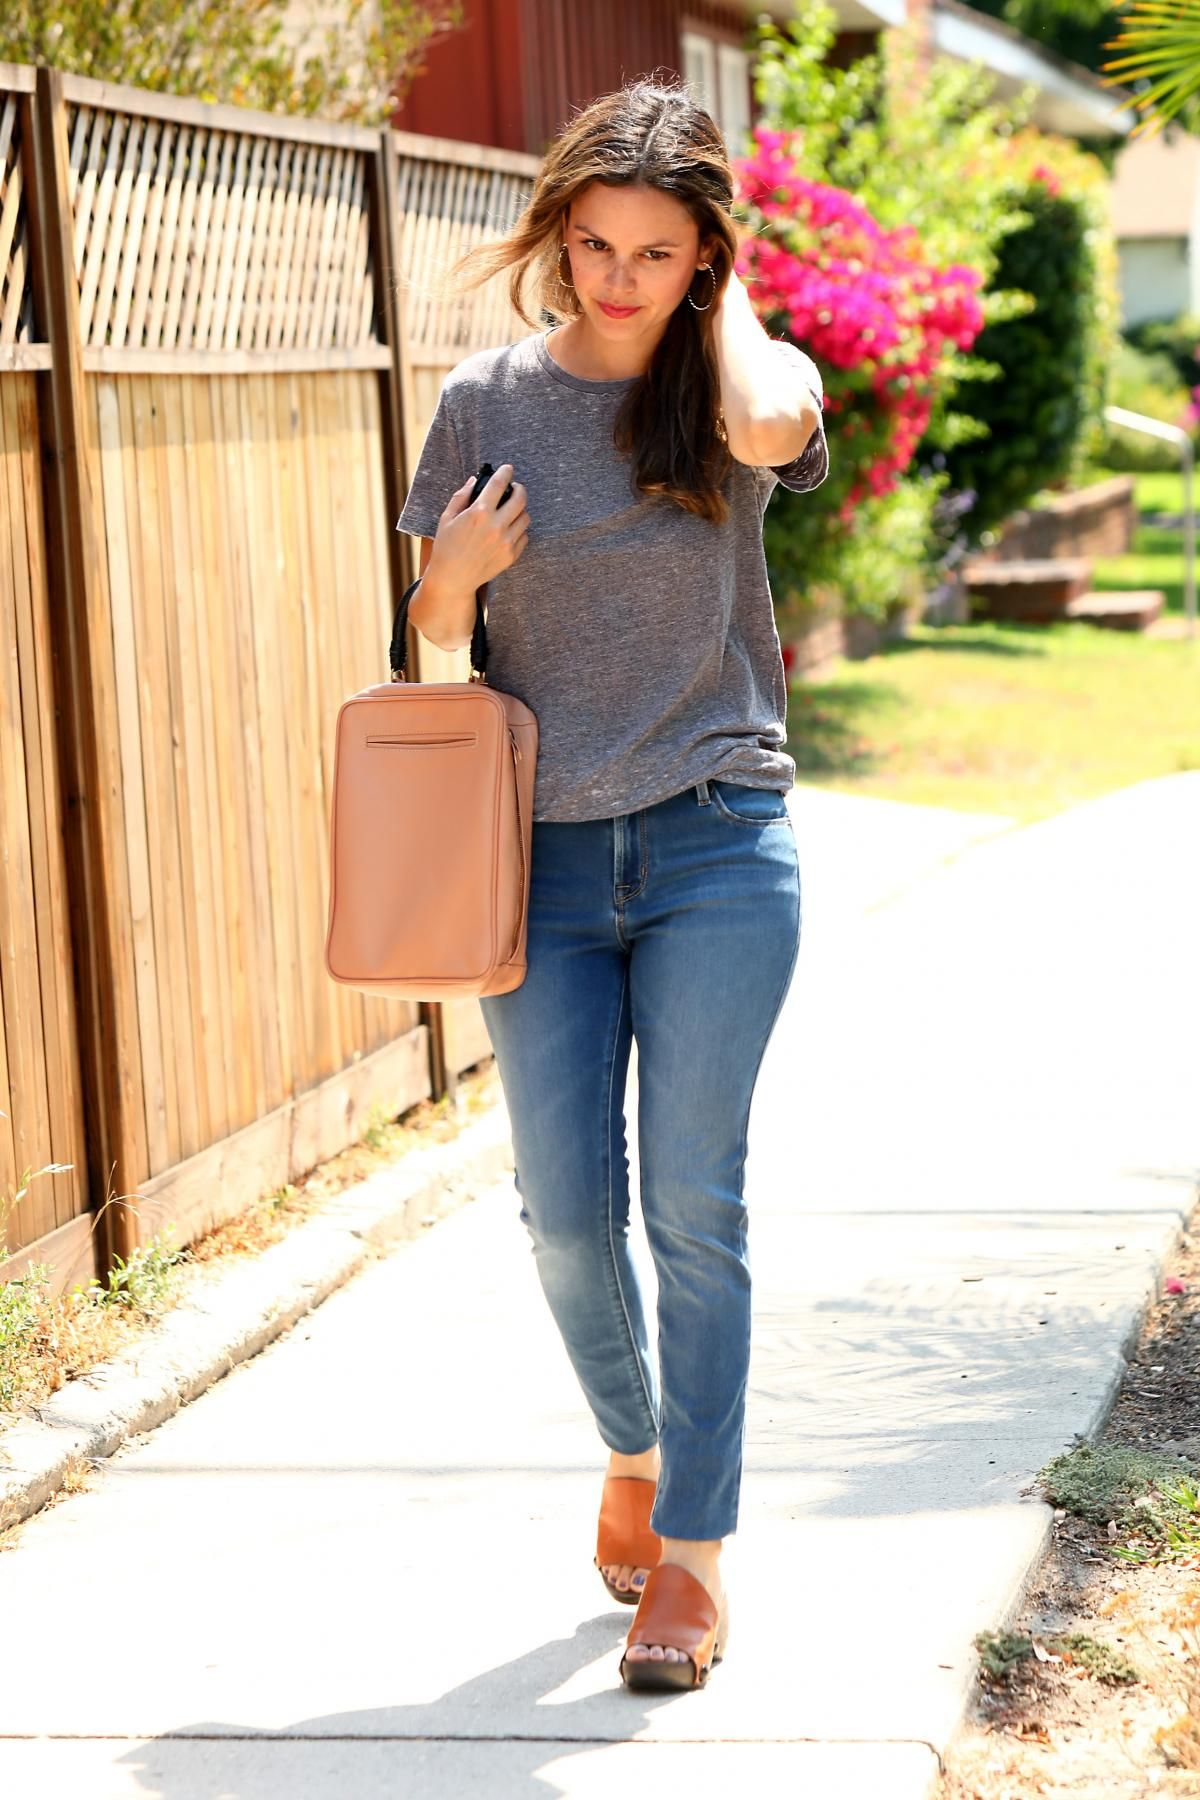 Rachel Bilson wearing Rachel Comey Olten Box Bag in Clay and Old Navy Mid-Rise Rock Star Jeans in Henry